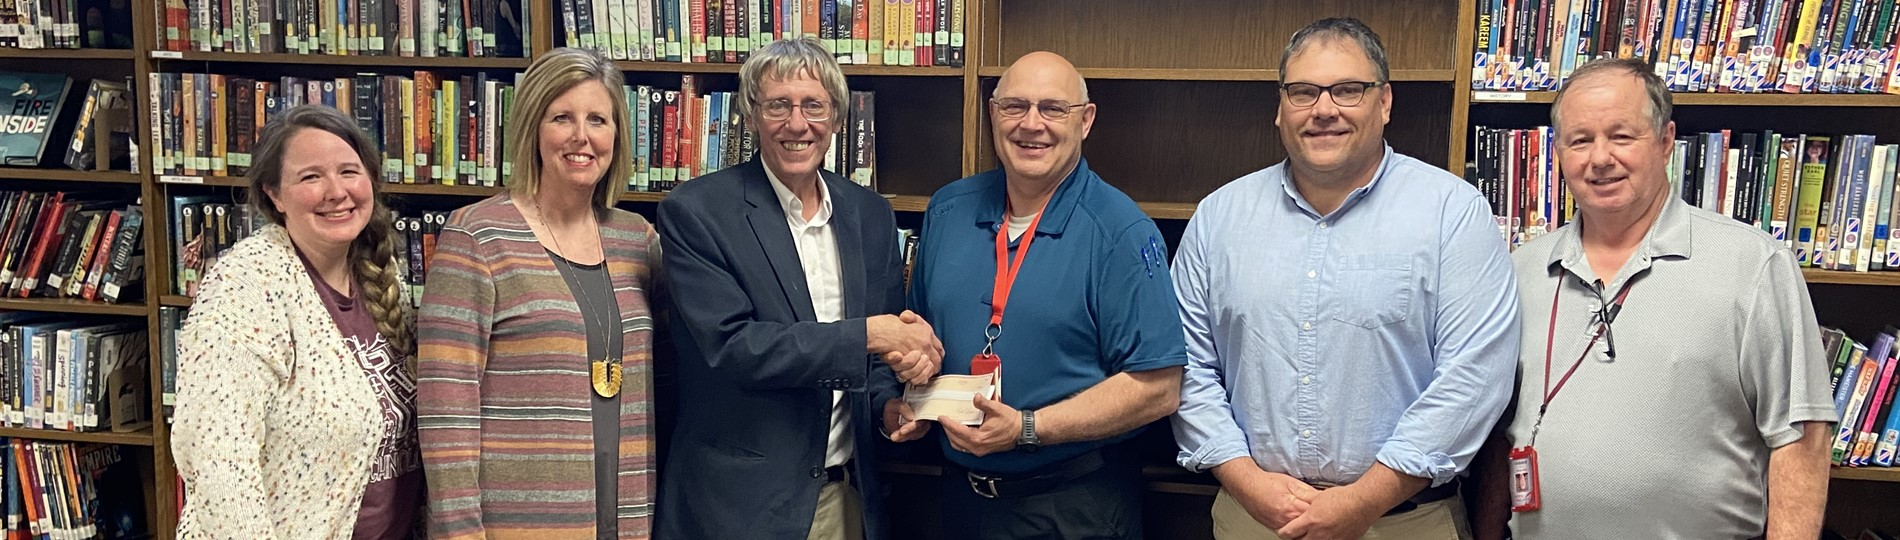 Crockett County Middle School Awarded $4,000 Utrust Grant